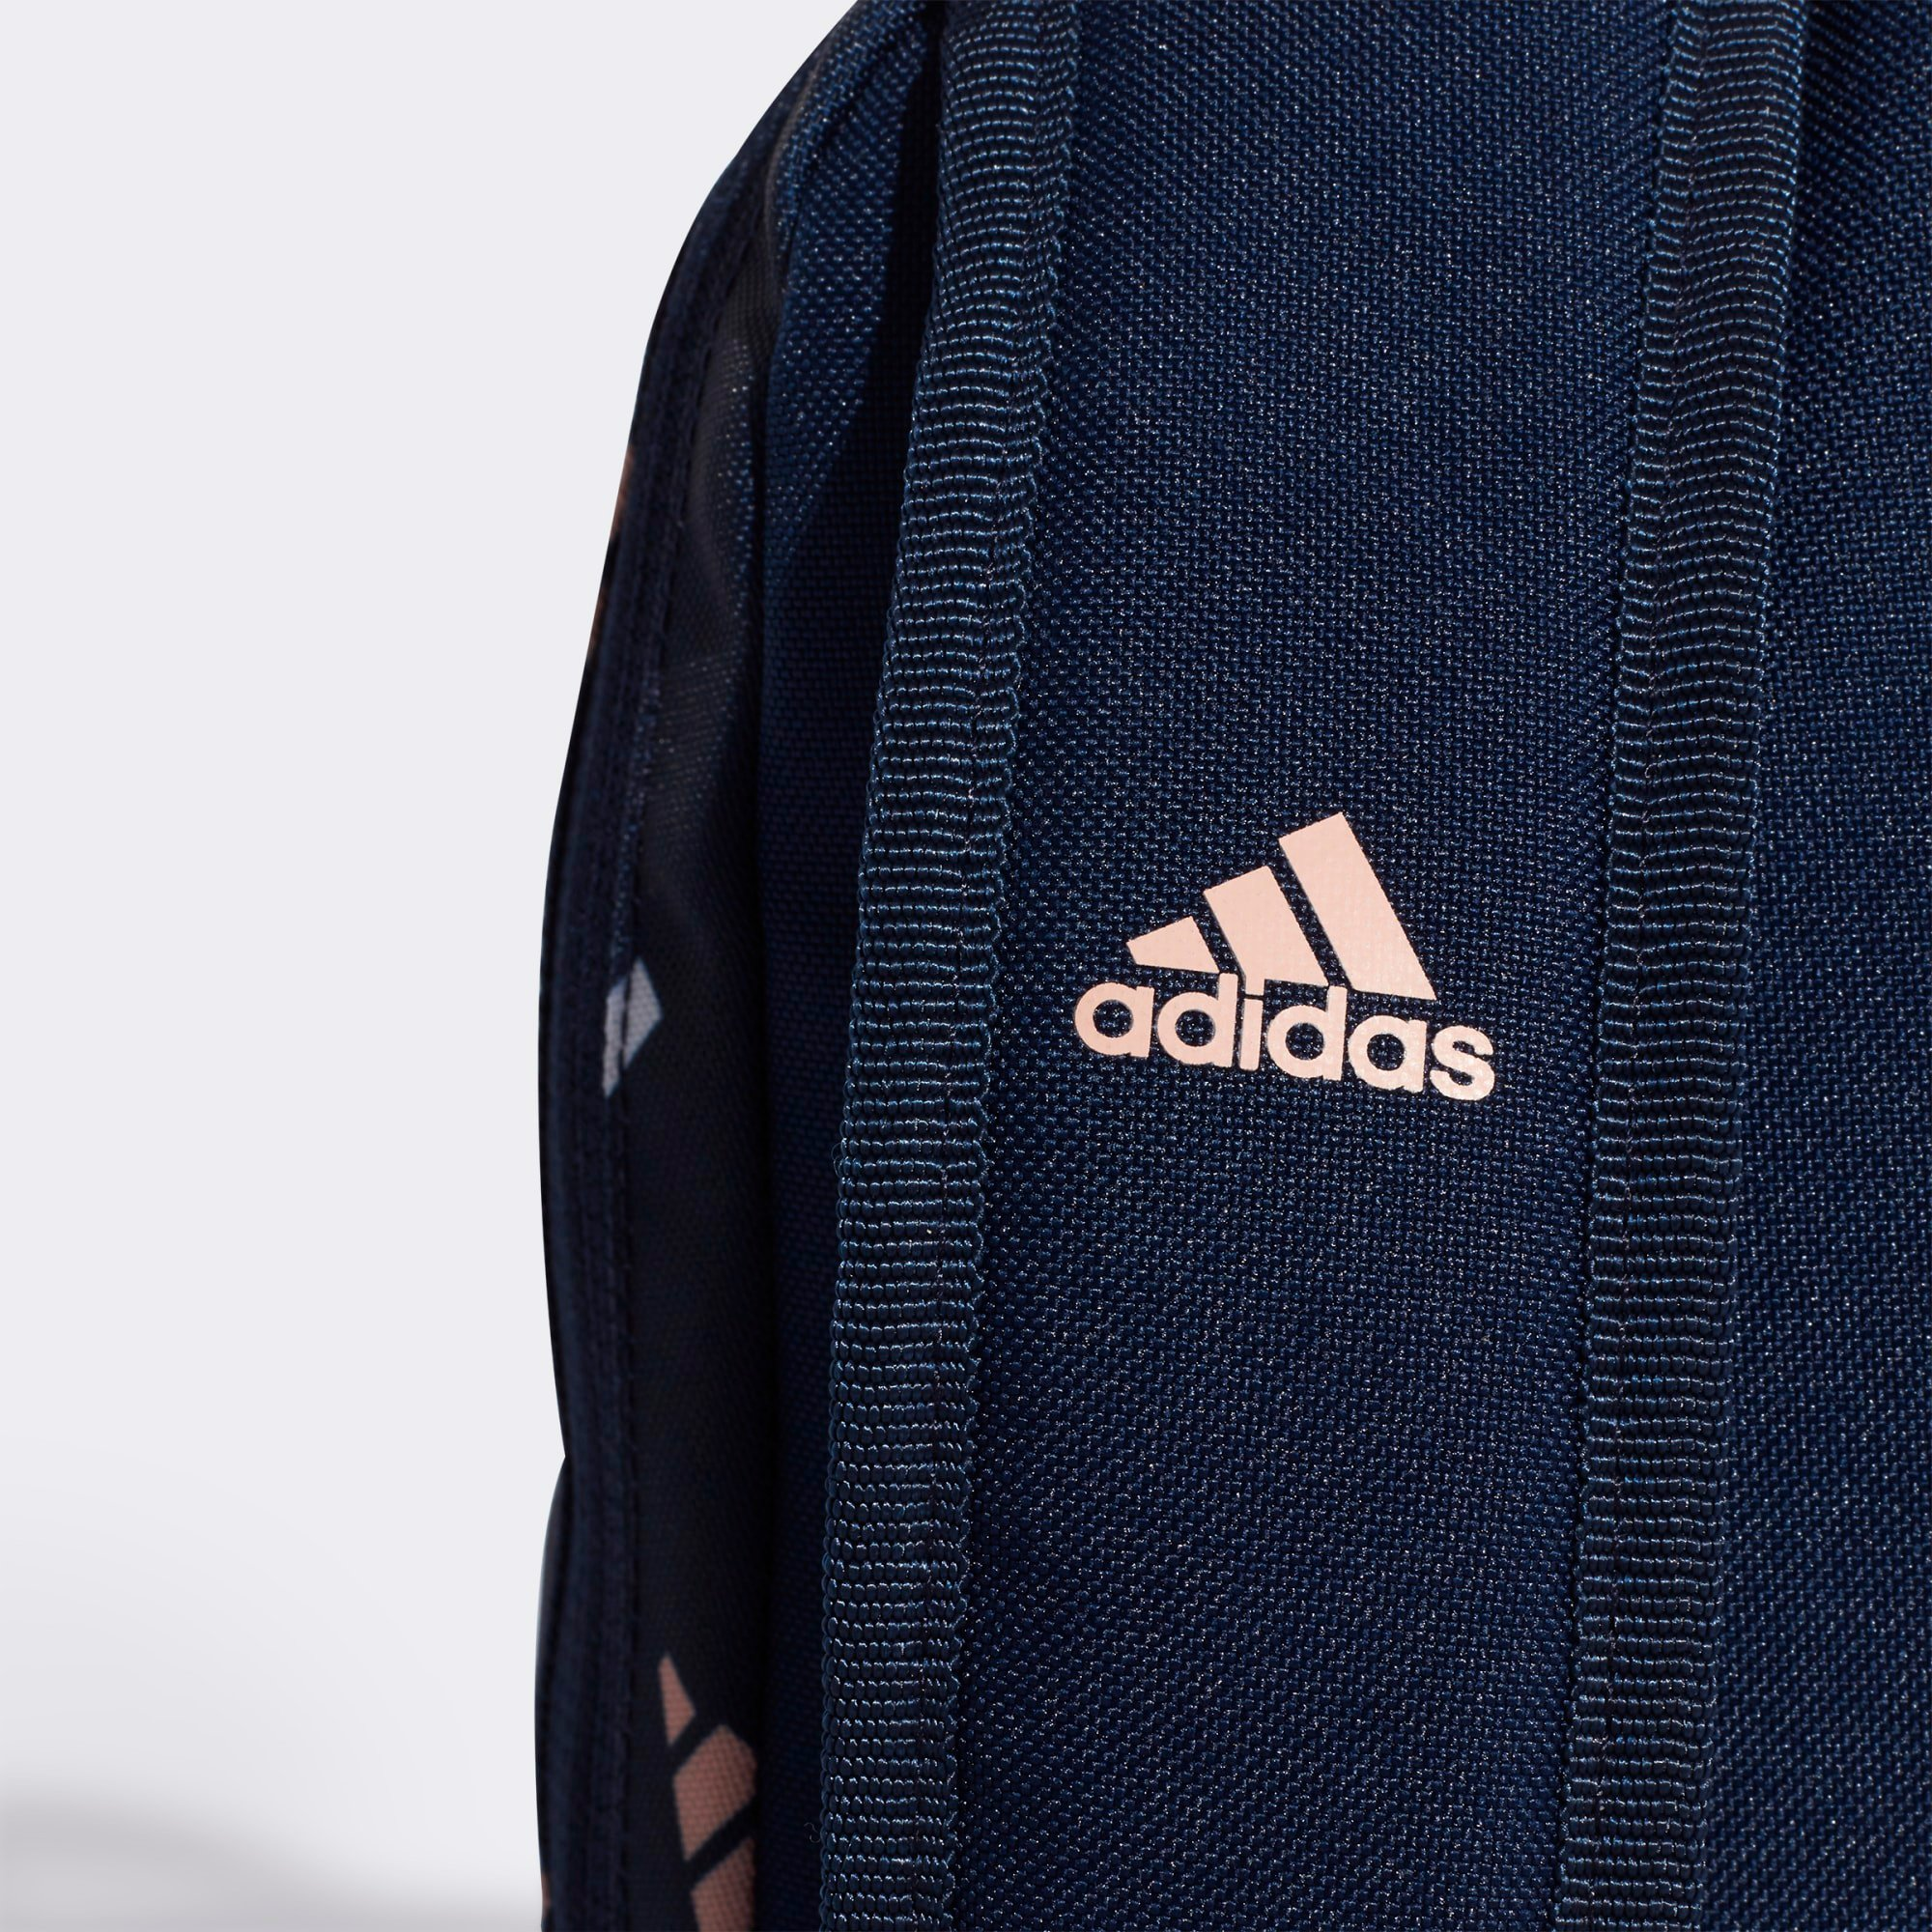 adidas Backpack - Collegiate Navy/Glow Pink